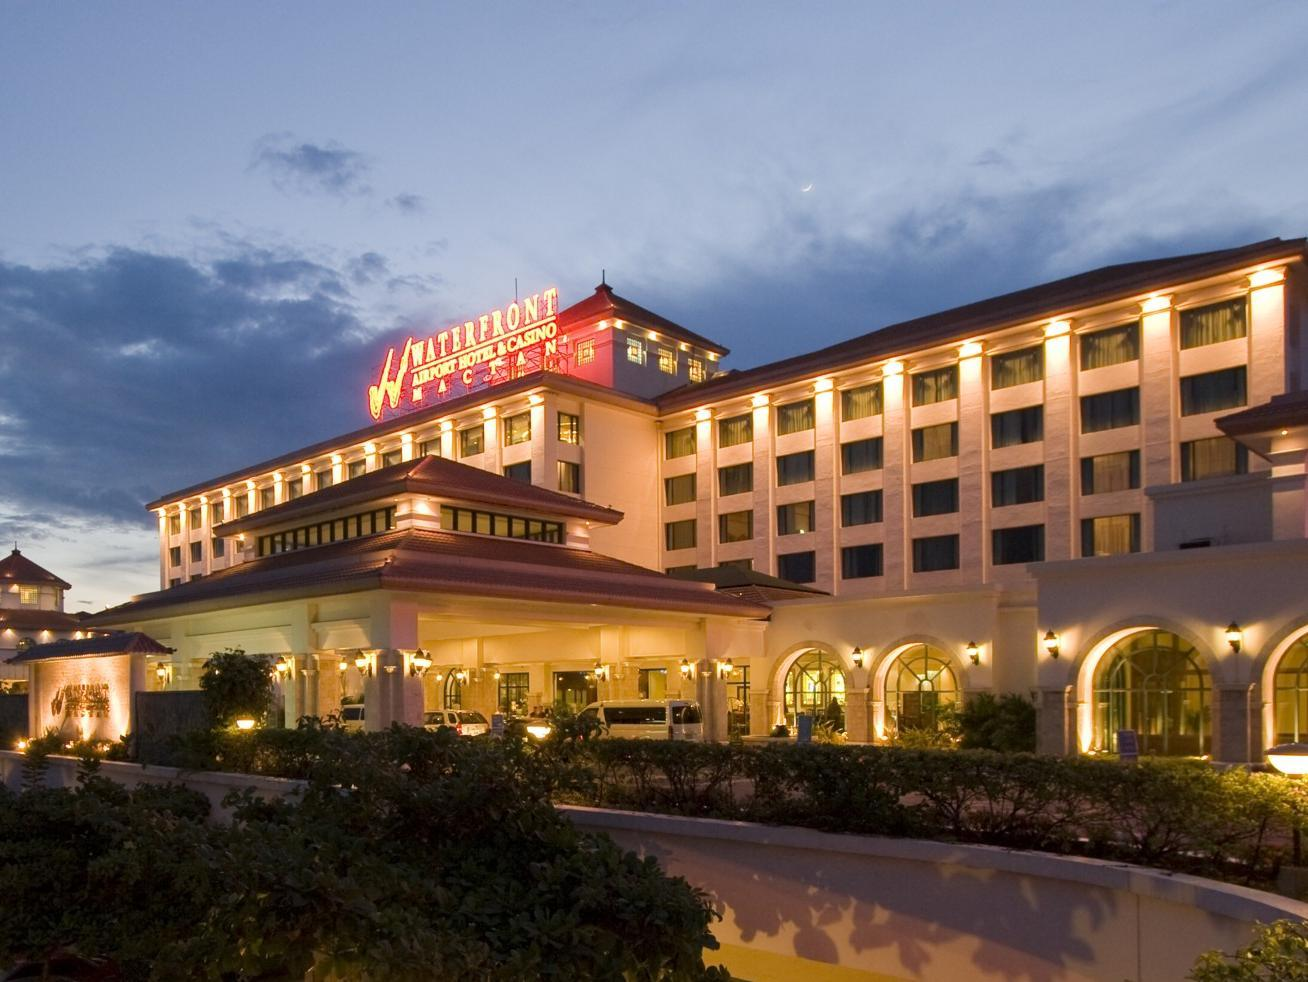 Waterfront Airport Hotel and Casino เซบูซิตี้